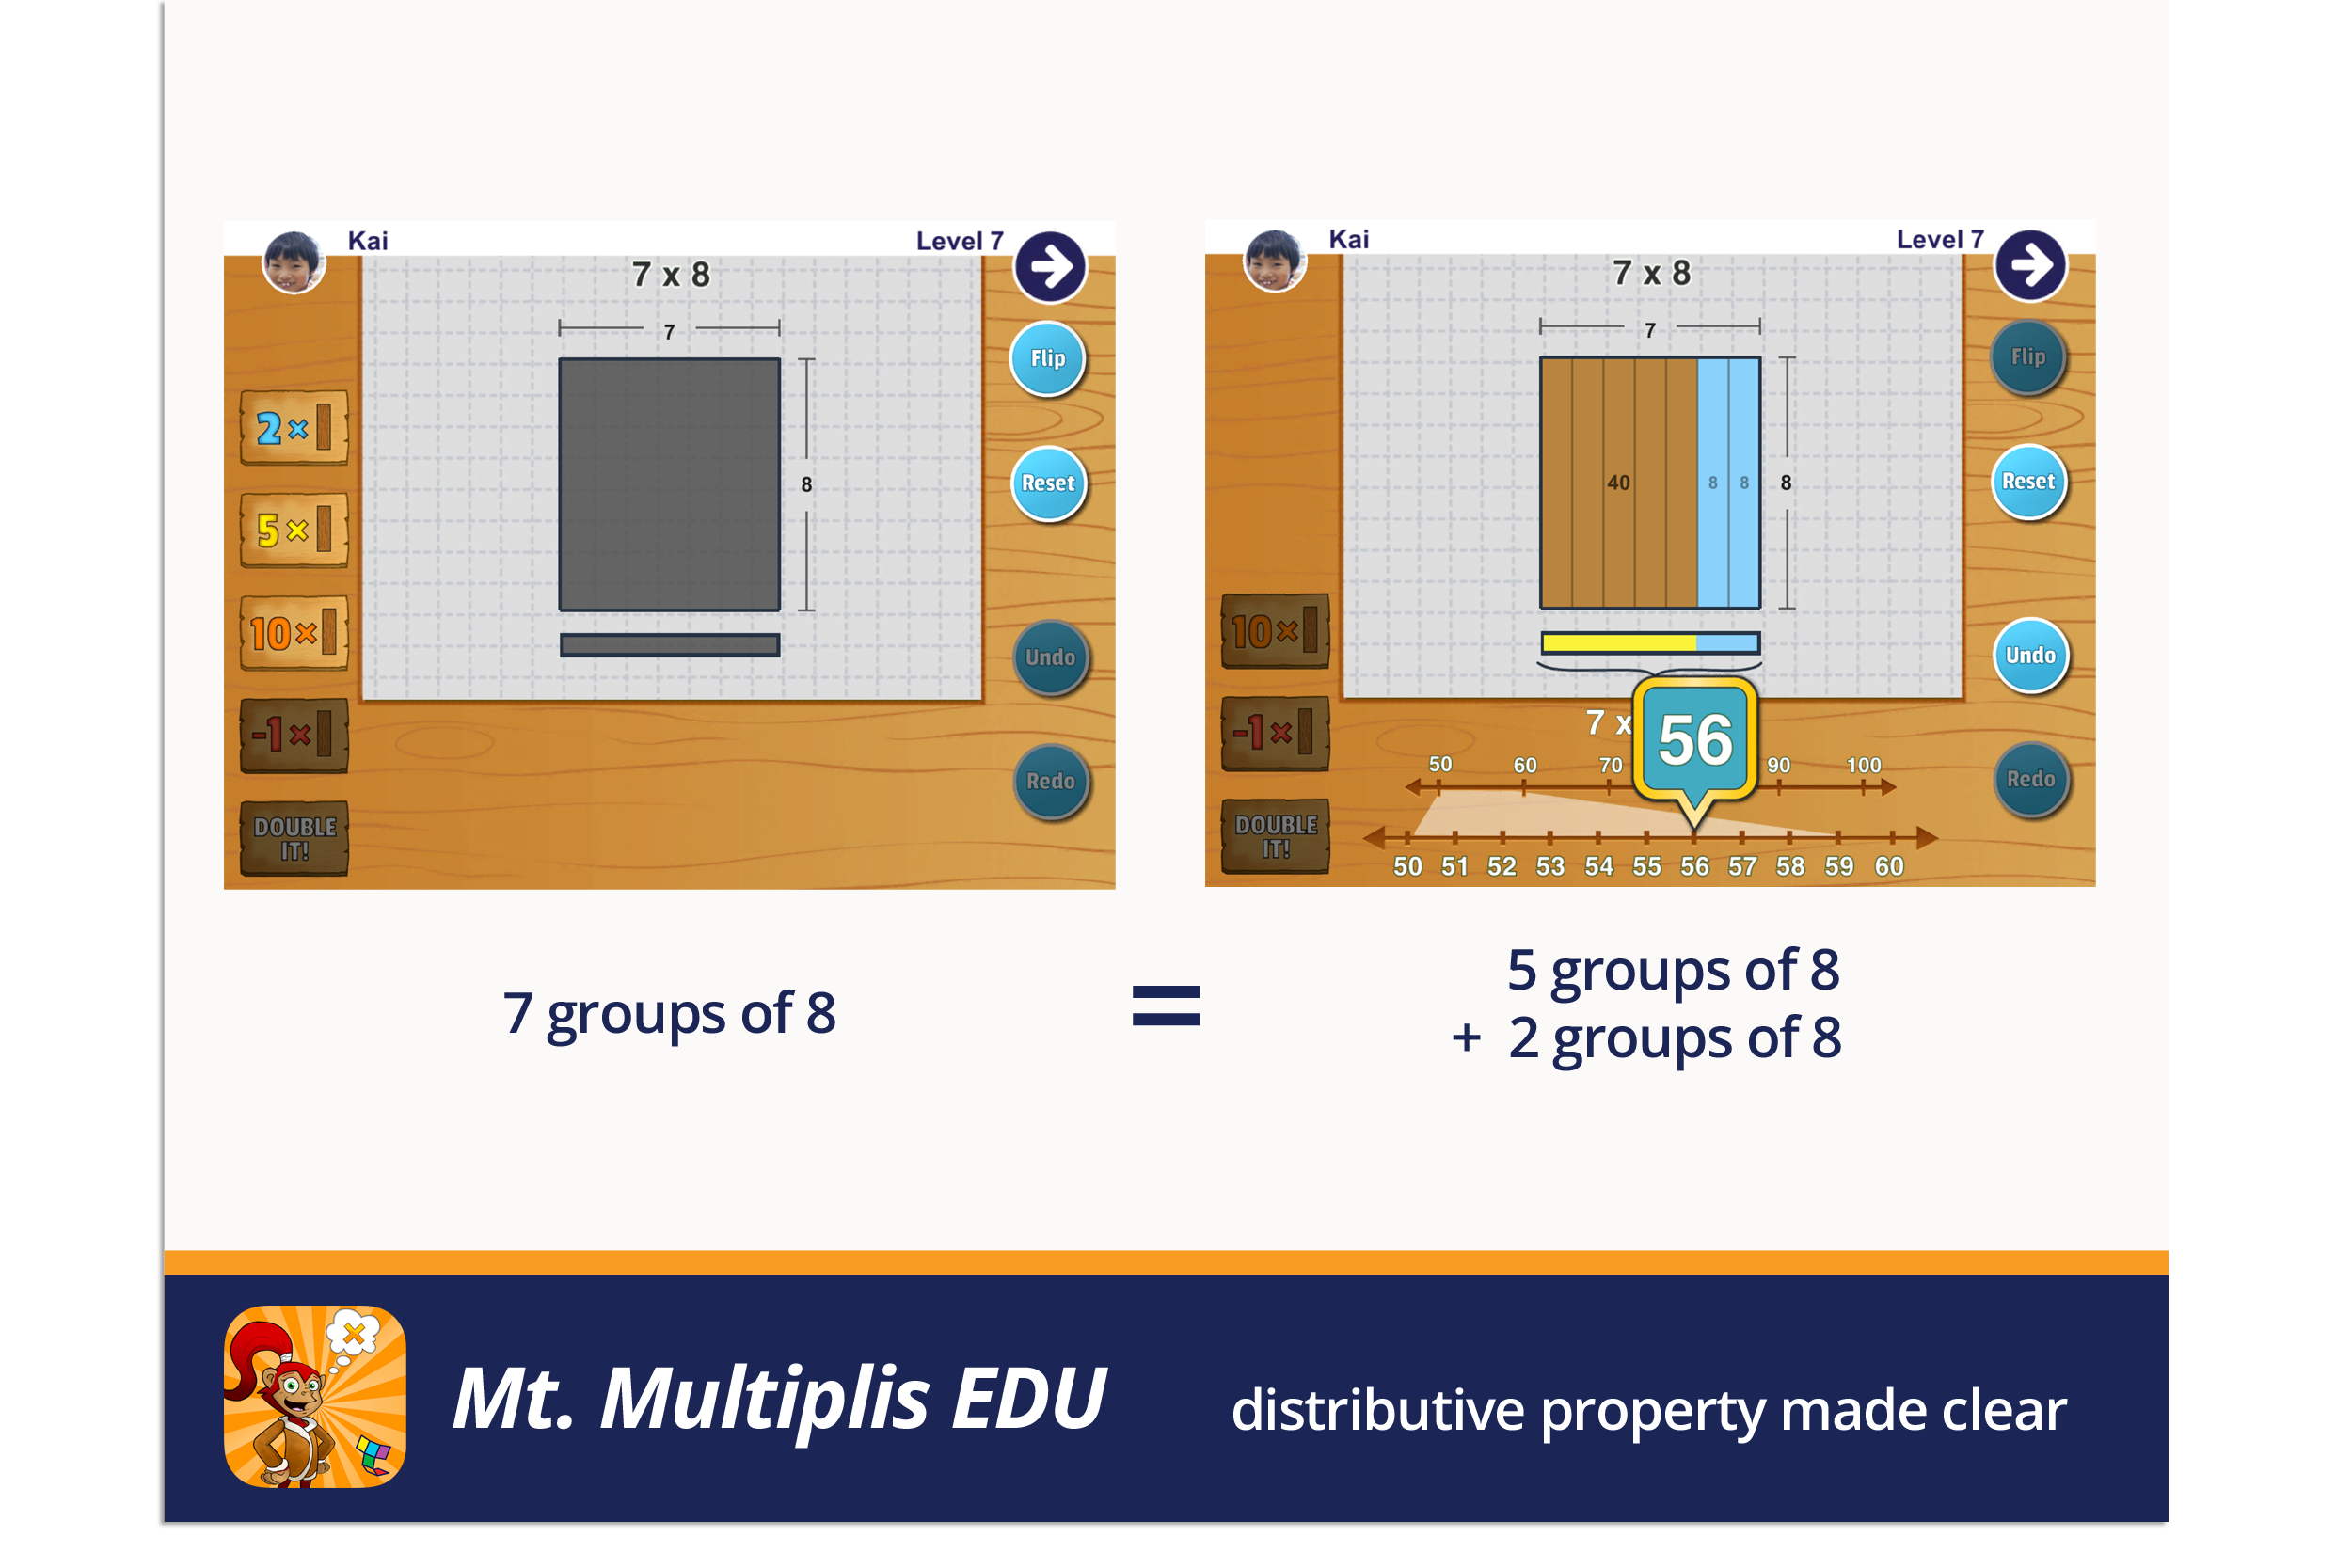 Mt. Multiplis EDU, distributive property made clear